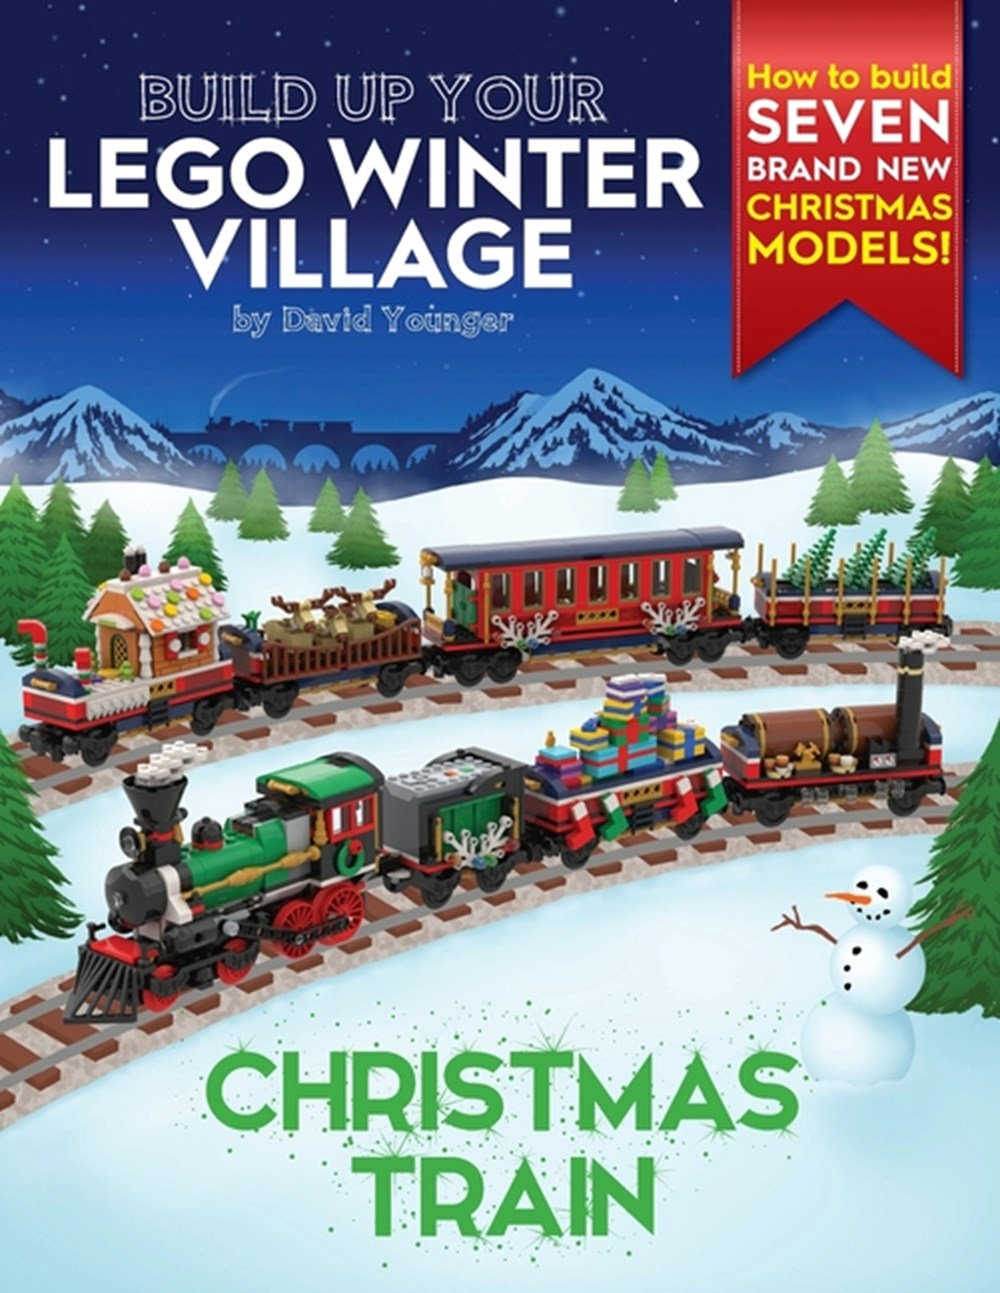 Build Up Your LEGO Winter Village Christmas Train